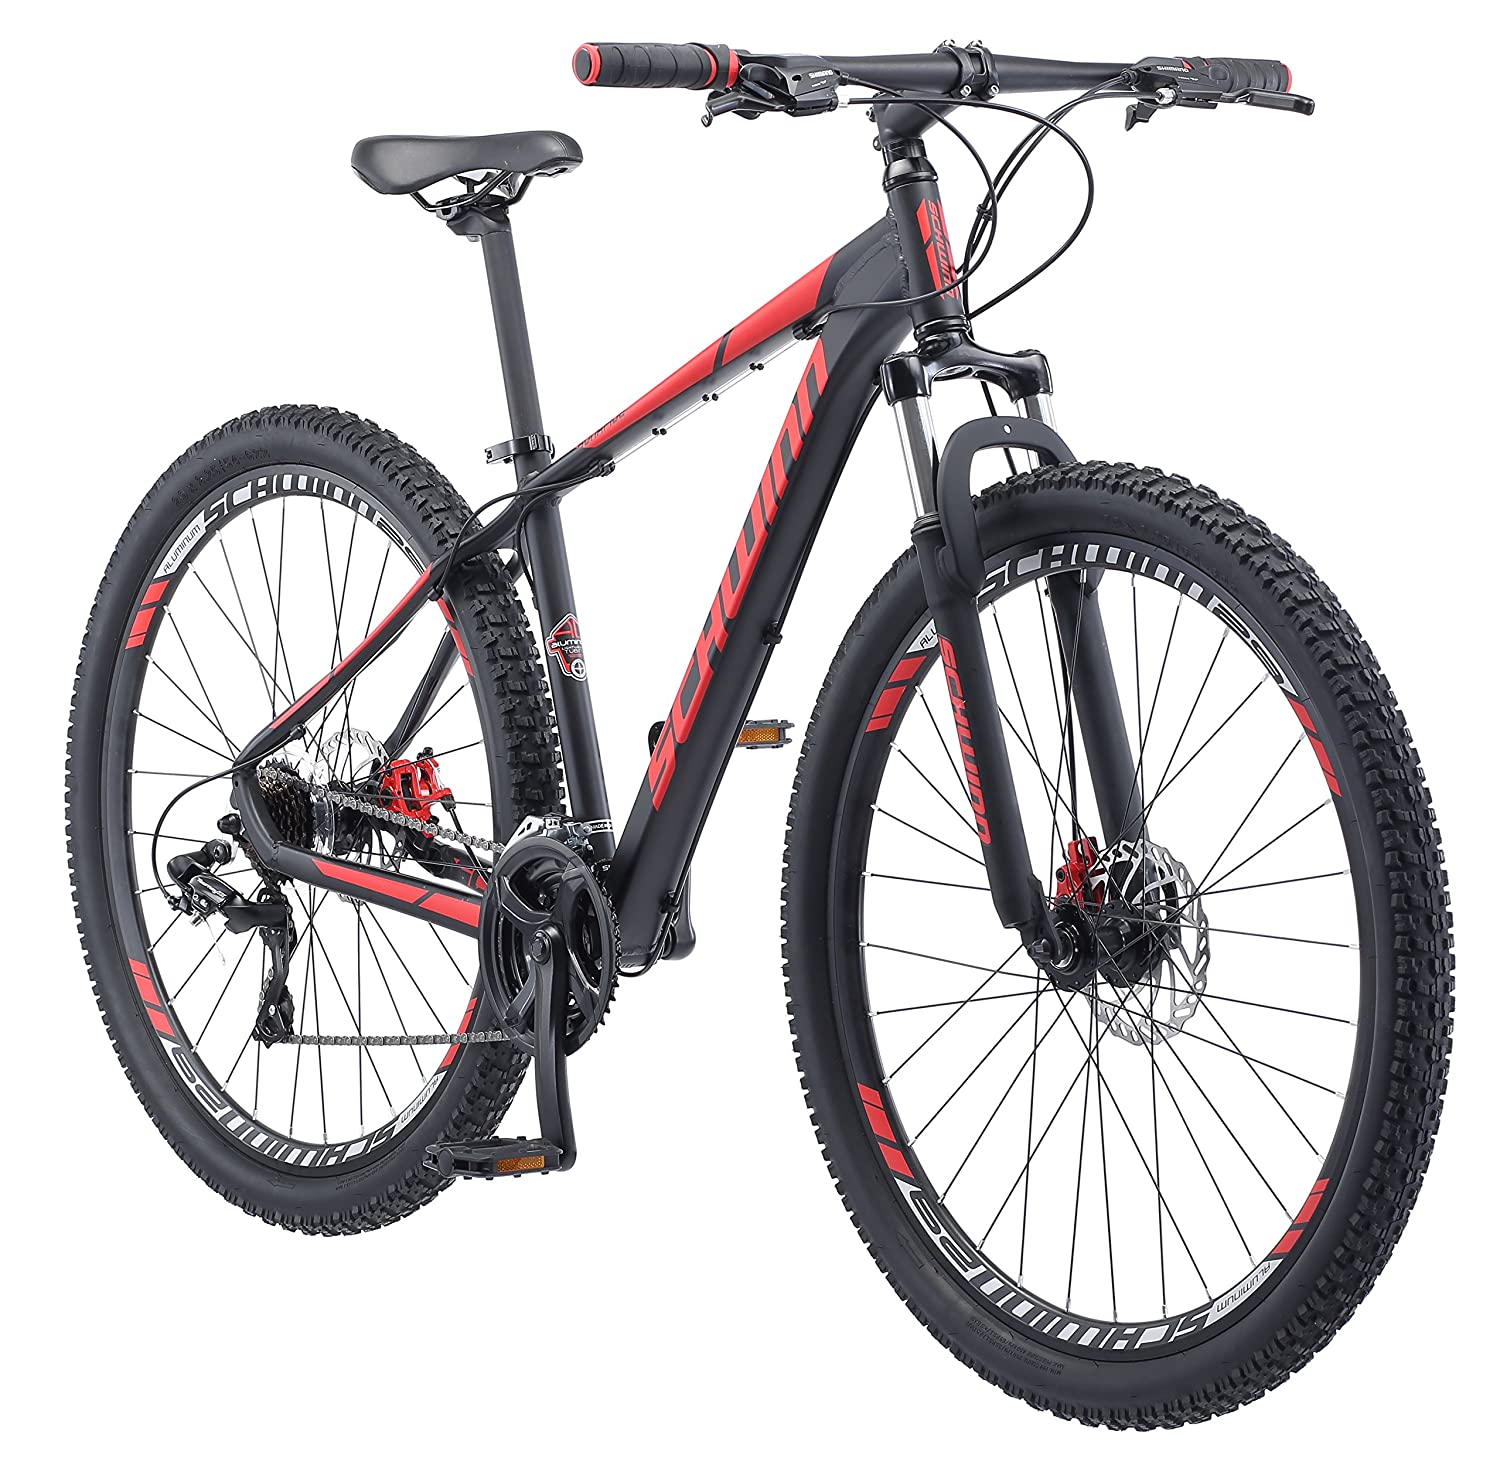 41a965ca667 Schwinn Bonafide Mountain Bike with Front Suspension, Featuring  17-Inch/Medium Aluminum Frame and 24-Speed Shimano Drivetrain with 29-Inch  Wheels and ...